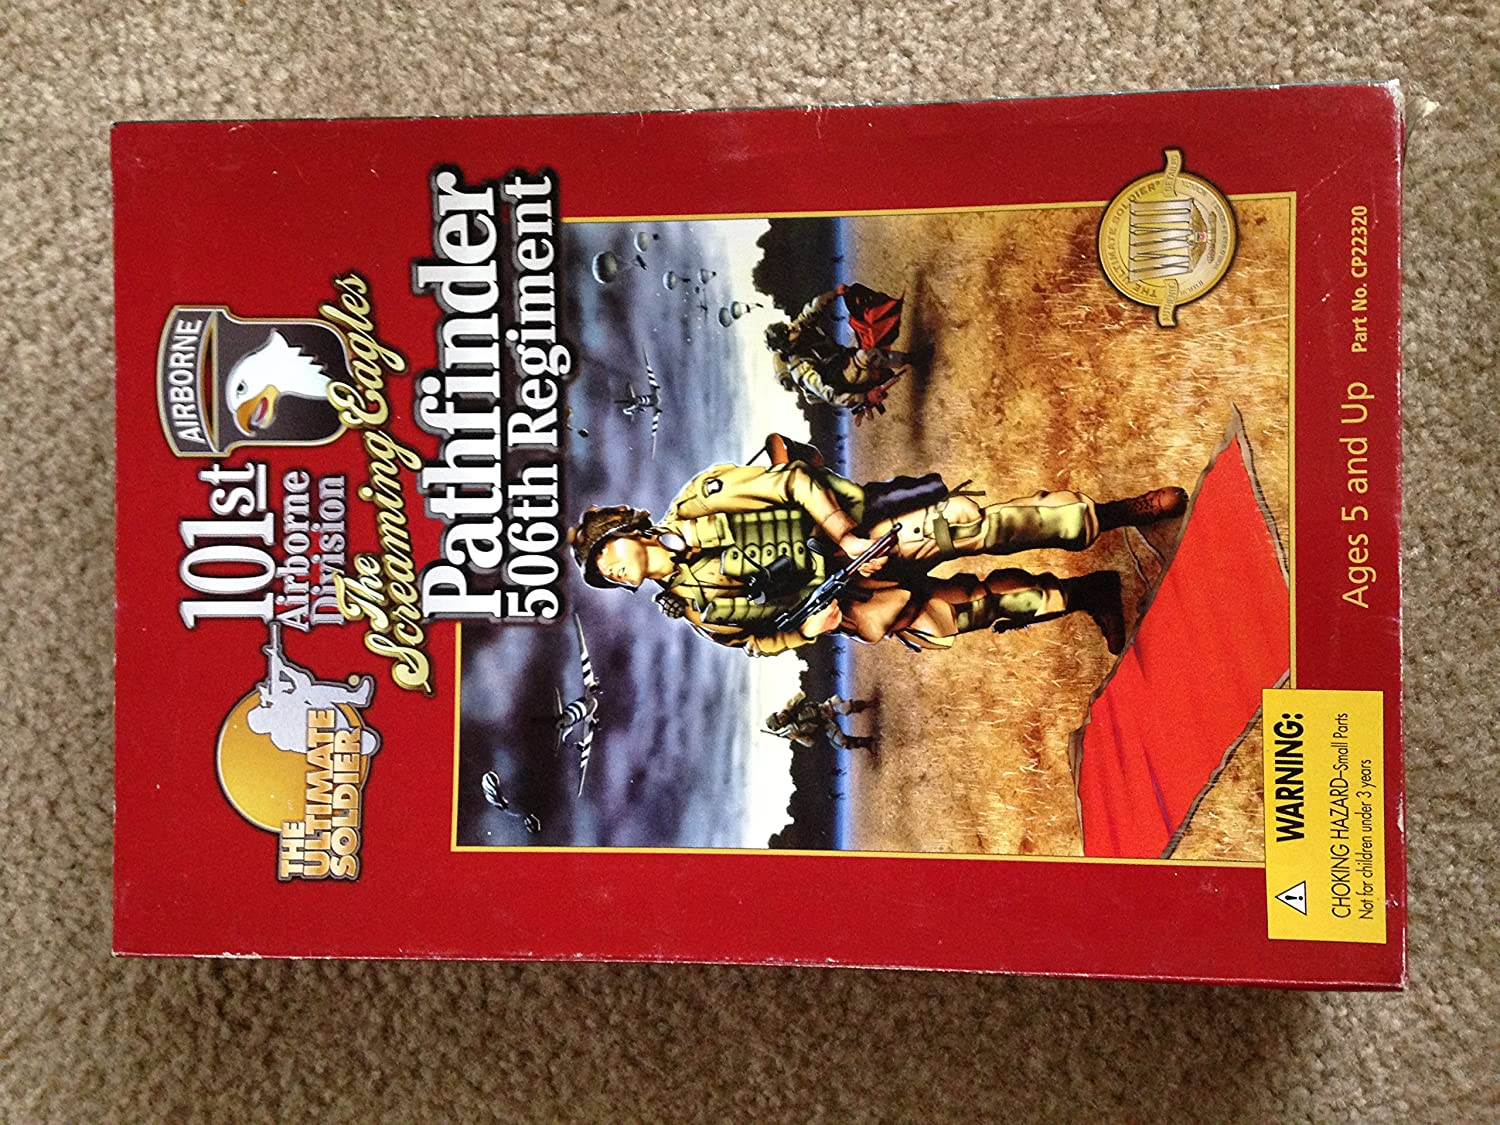 21st WWII 101st Airborne 506th Pathfinders Screaming Eagles by Ultimate Soldier